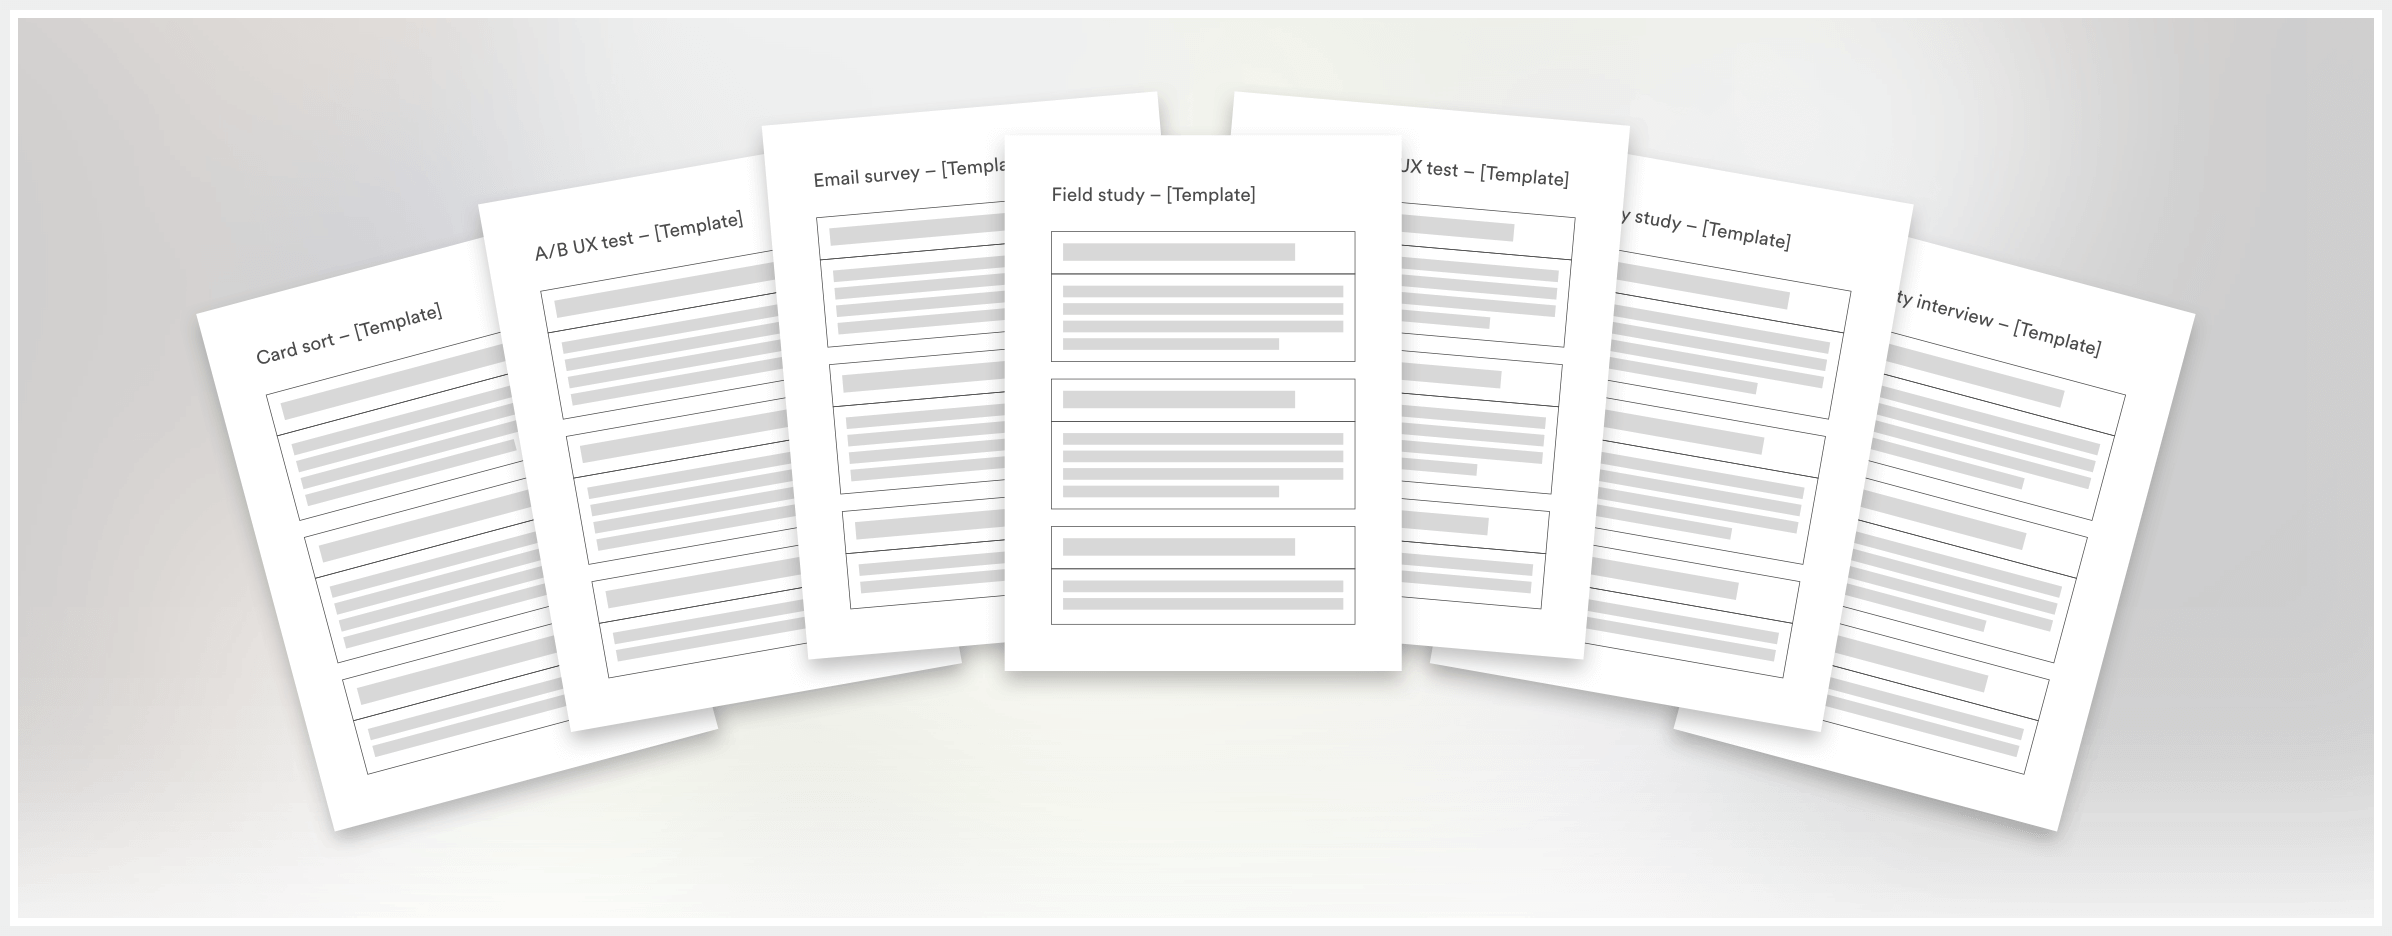 research-templates